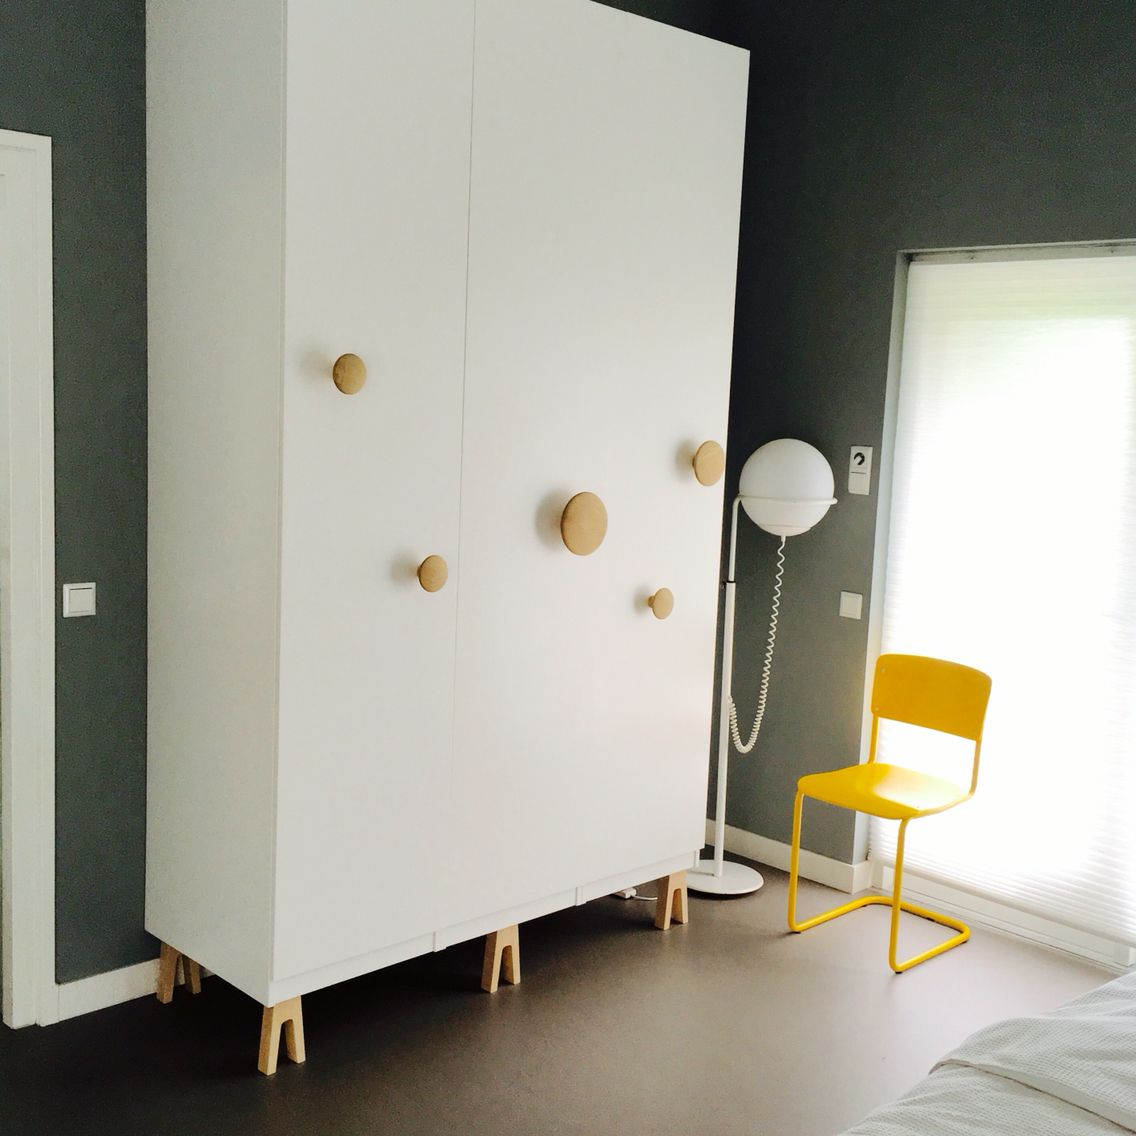 Ikea Schlafzimmer Fronten Ikea Pax Hack With Muuto Dots On Superfront Legs Apt In Side